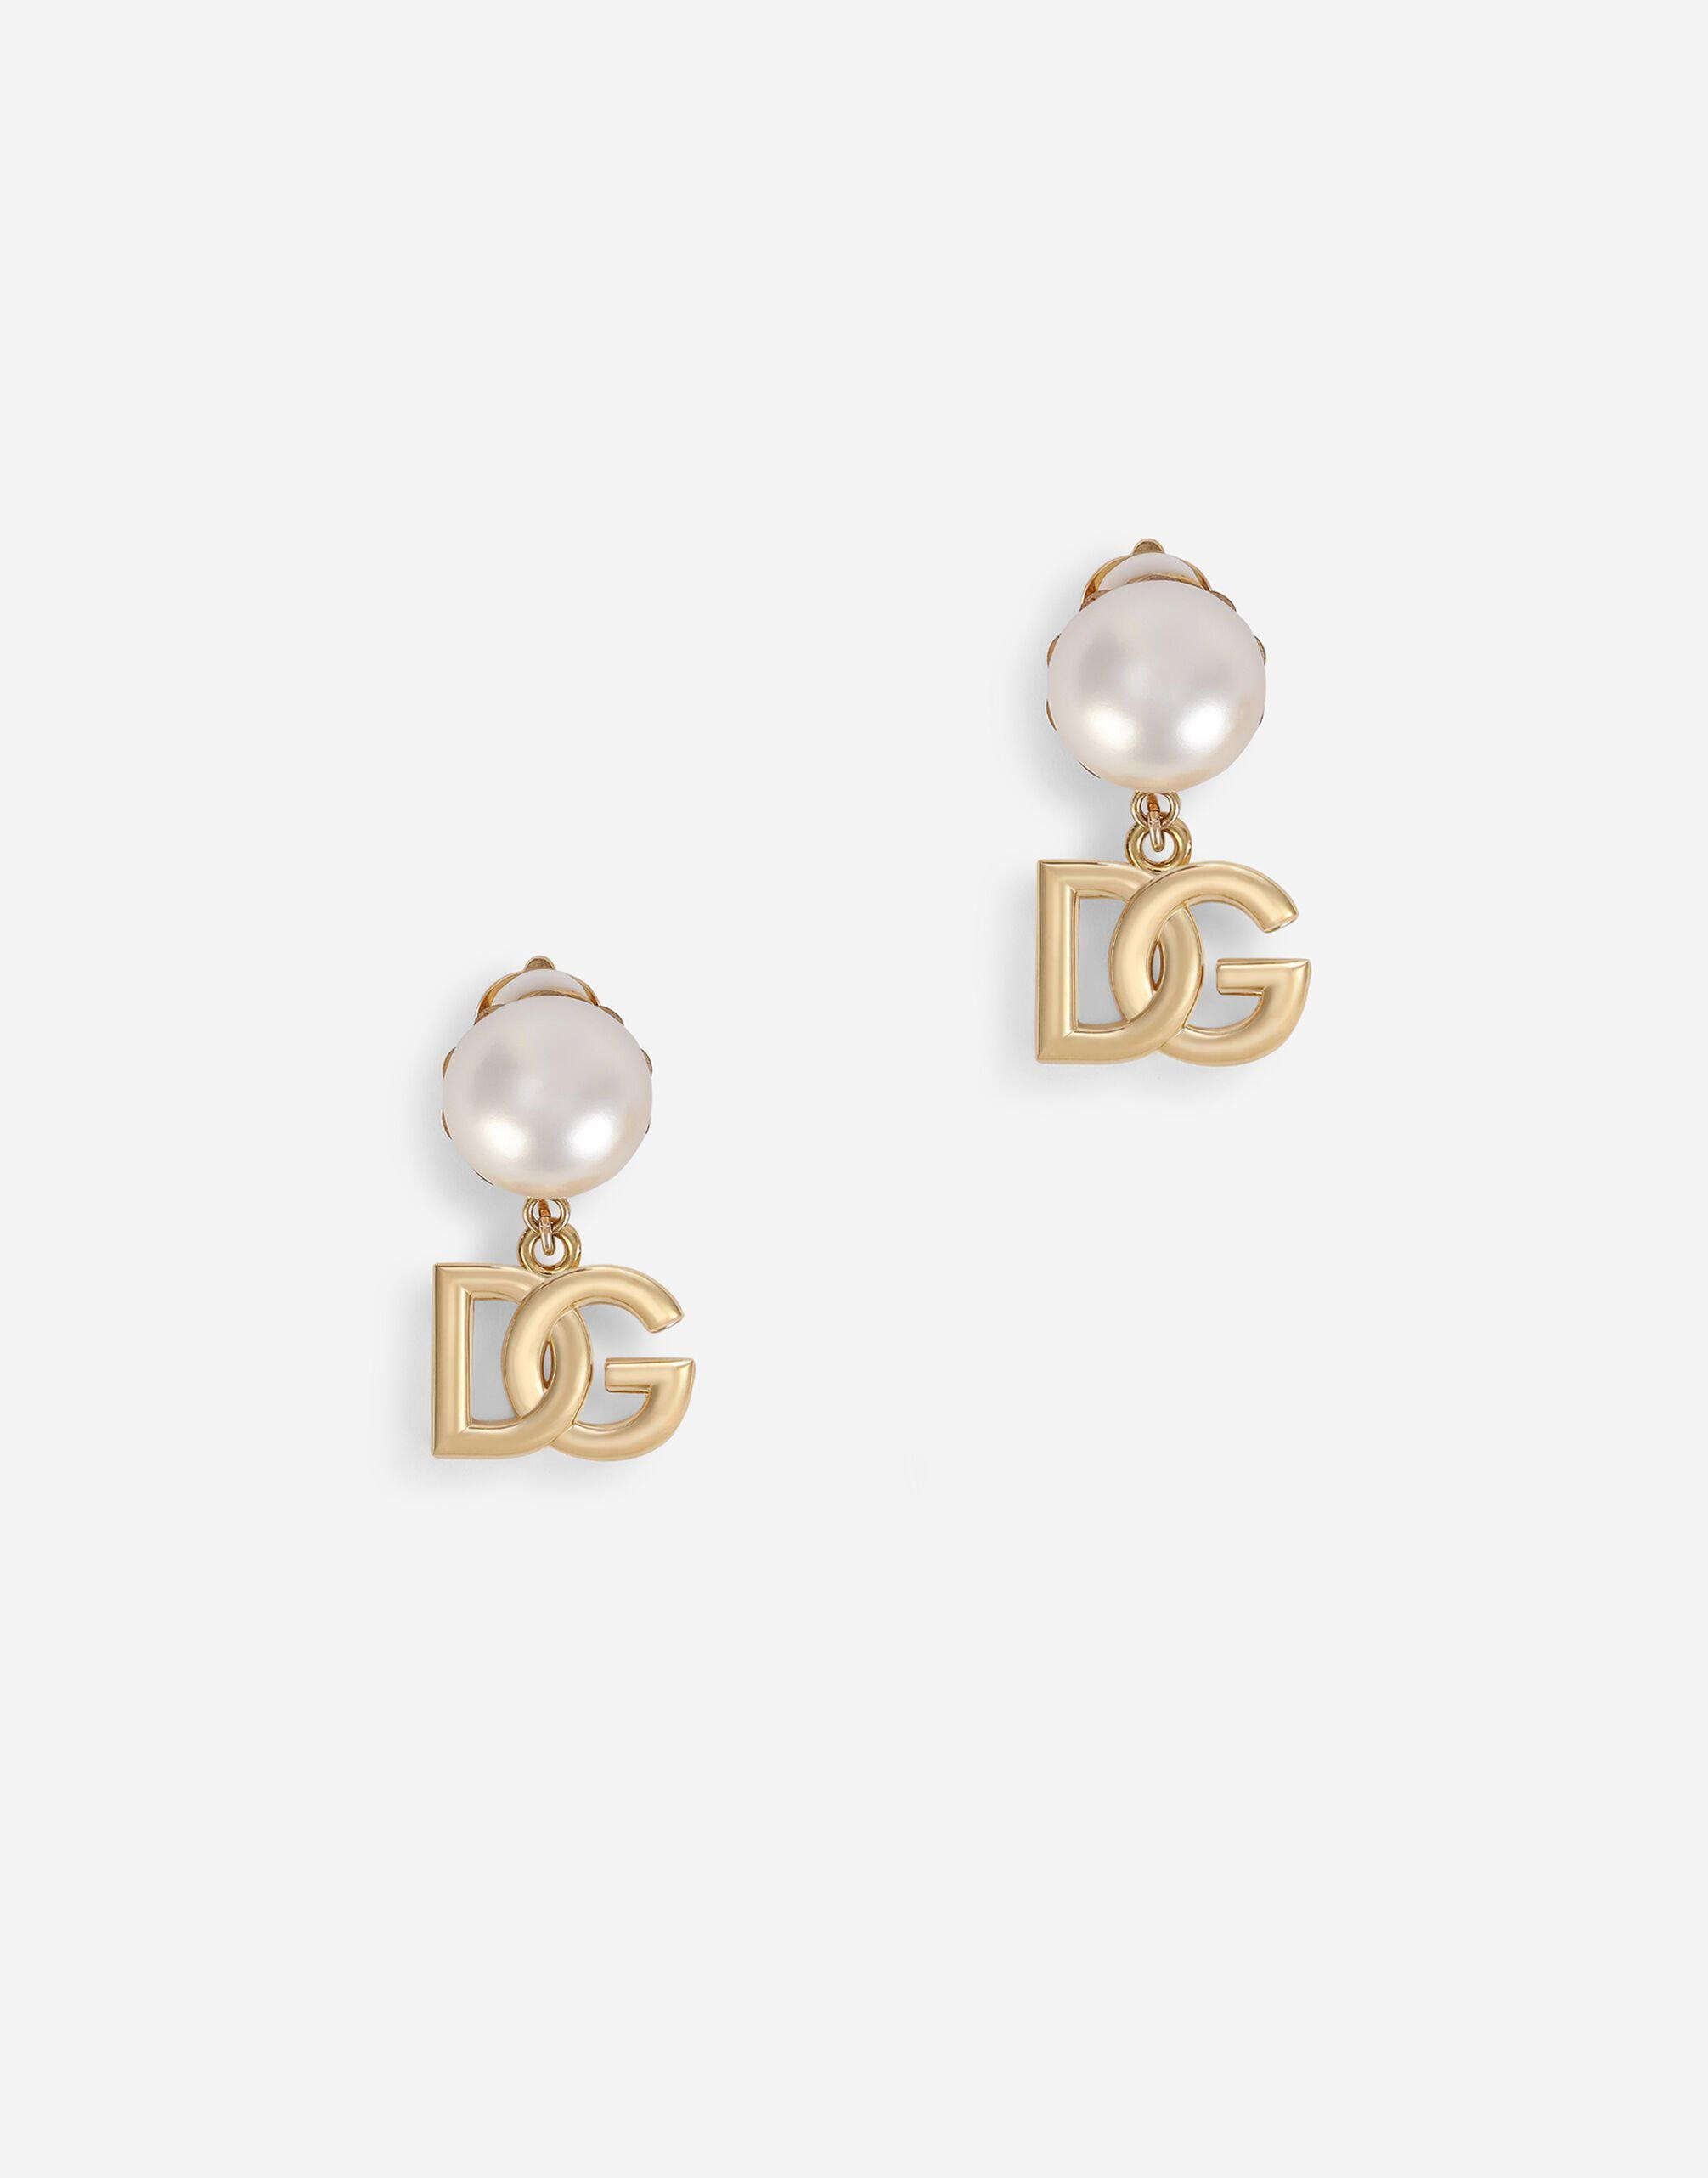 Clip-on earrings with pearls and DG logo pendants